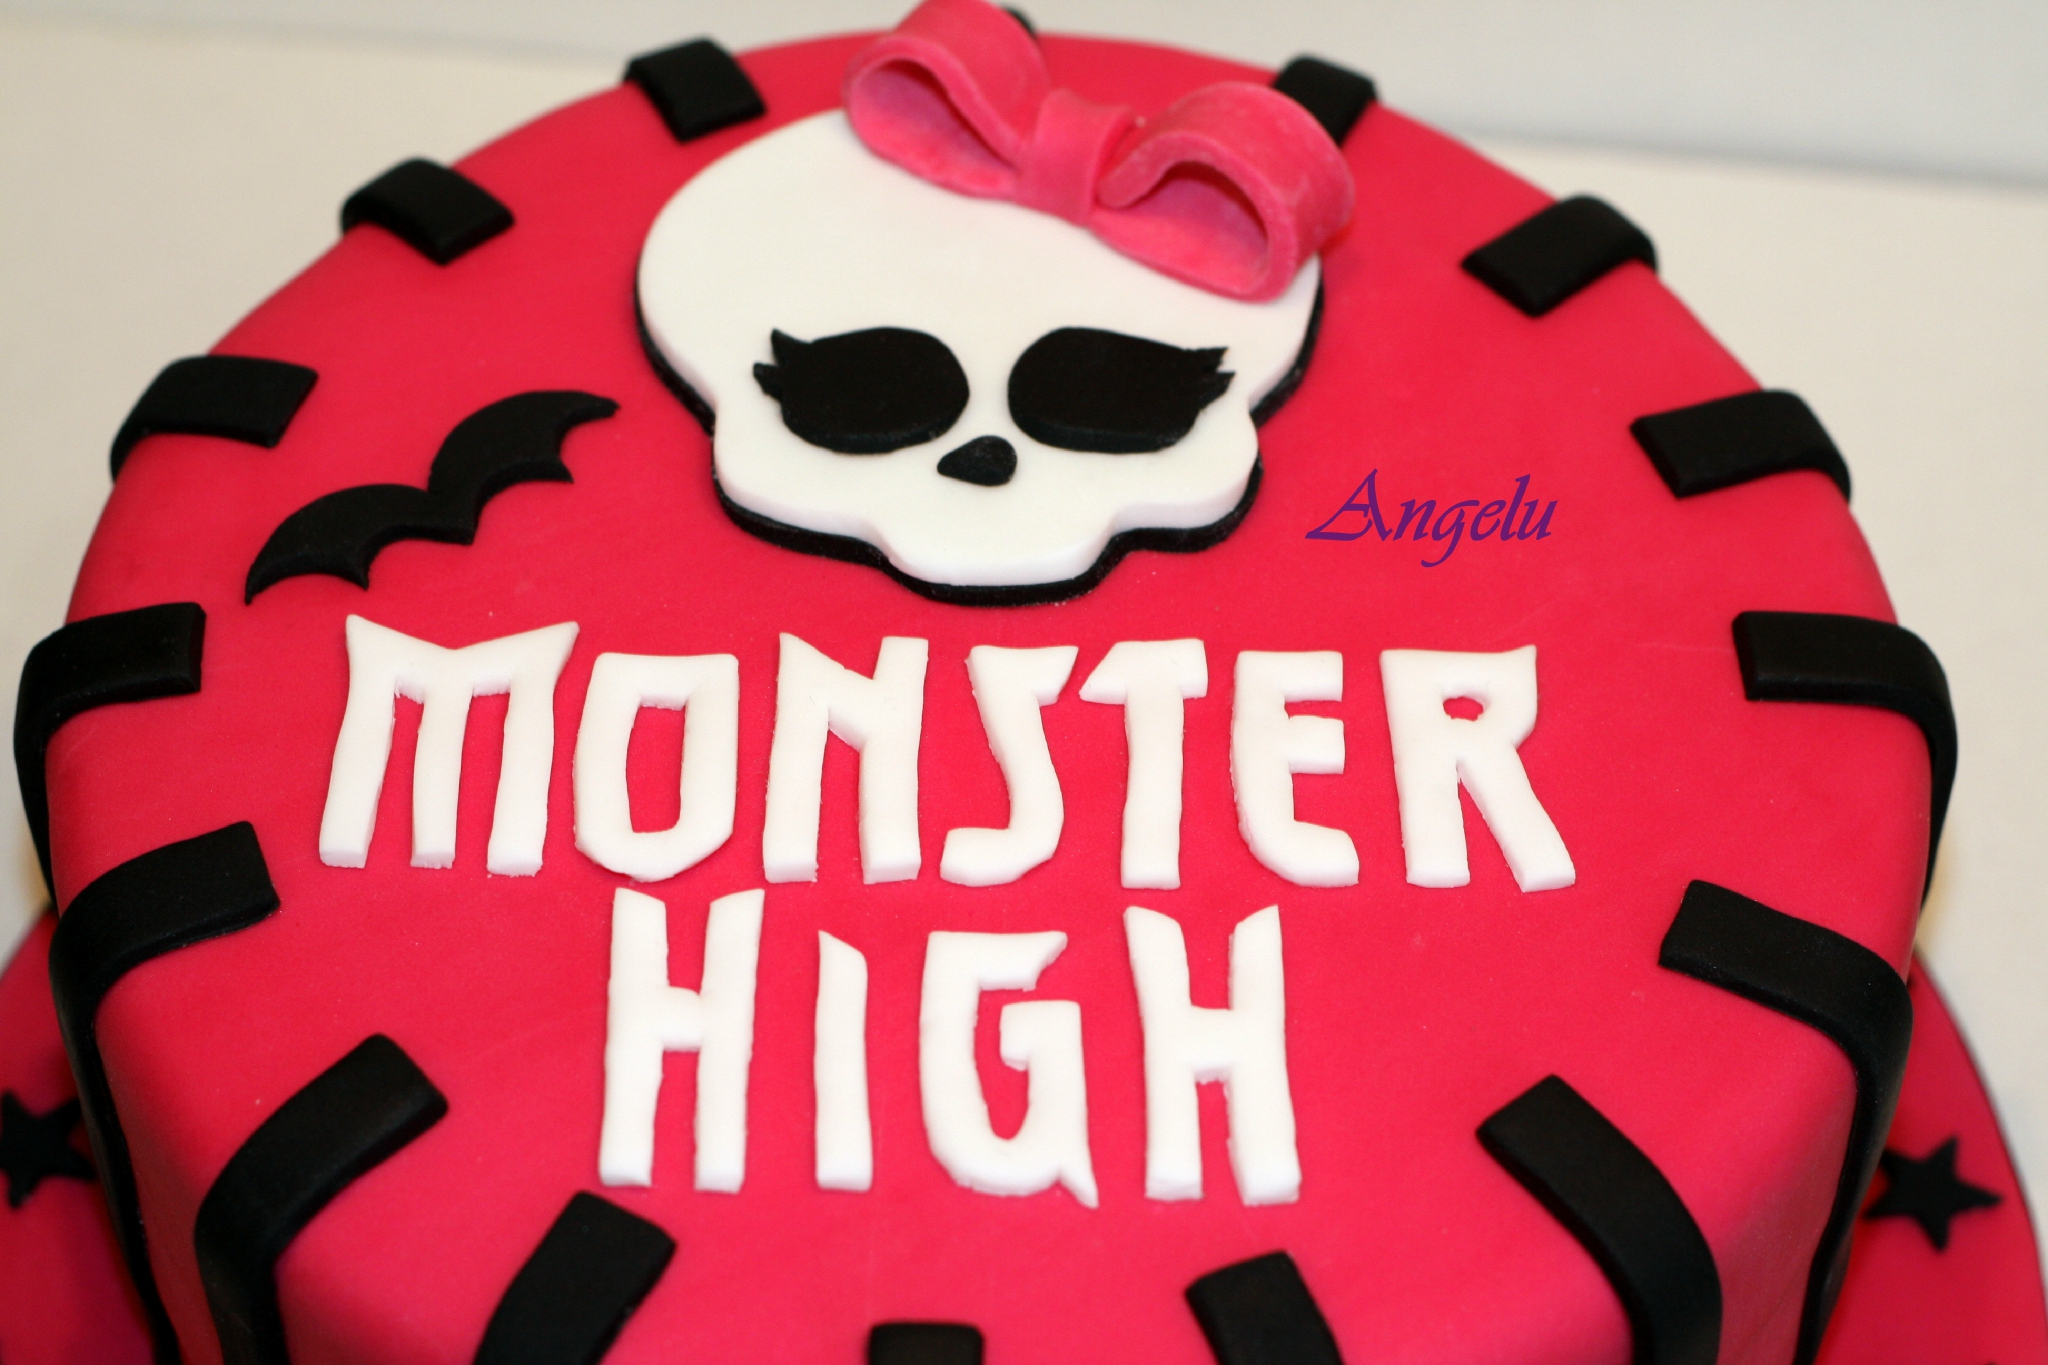 Assez Gâteau Monster High - MA PETITE PATISSERIE (Contact : isilda@neuf.fr) EY52